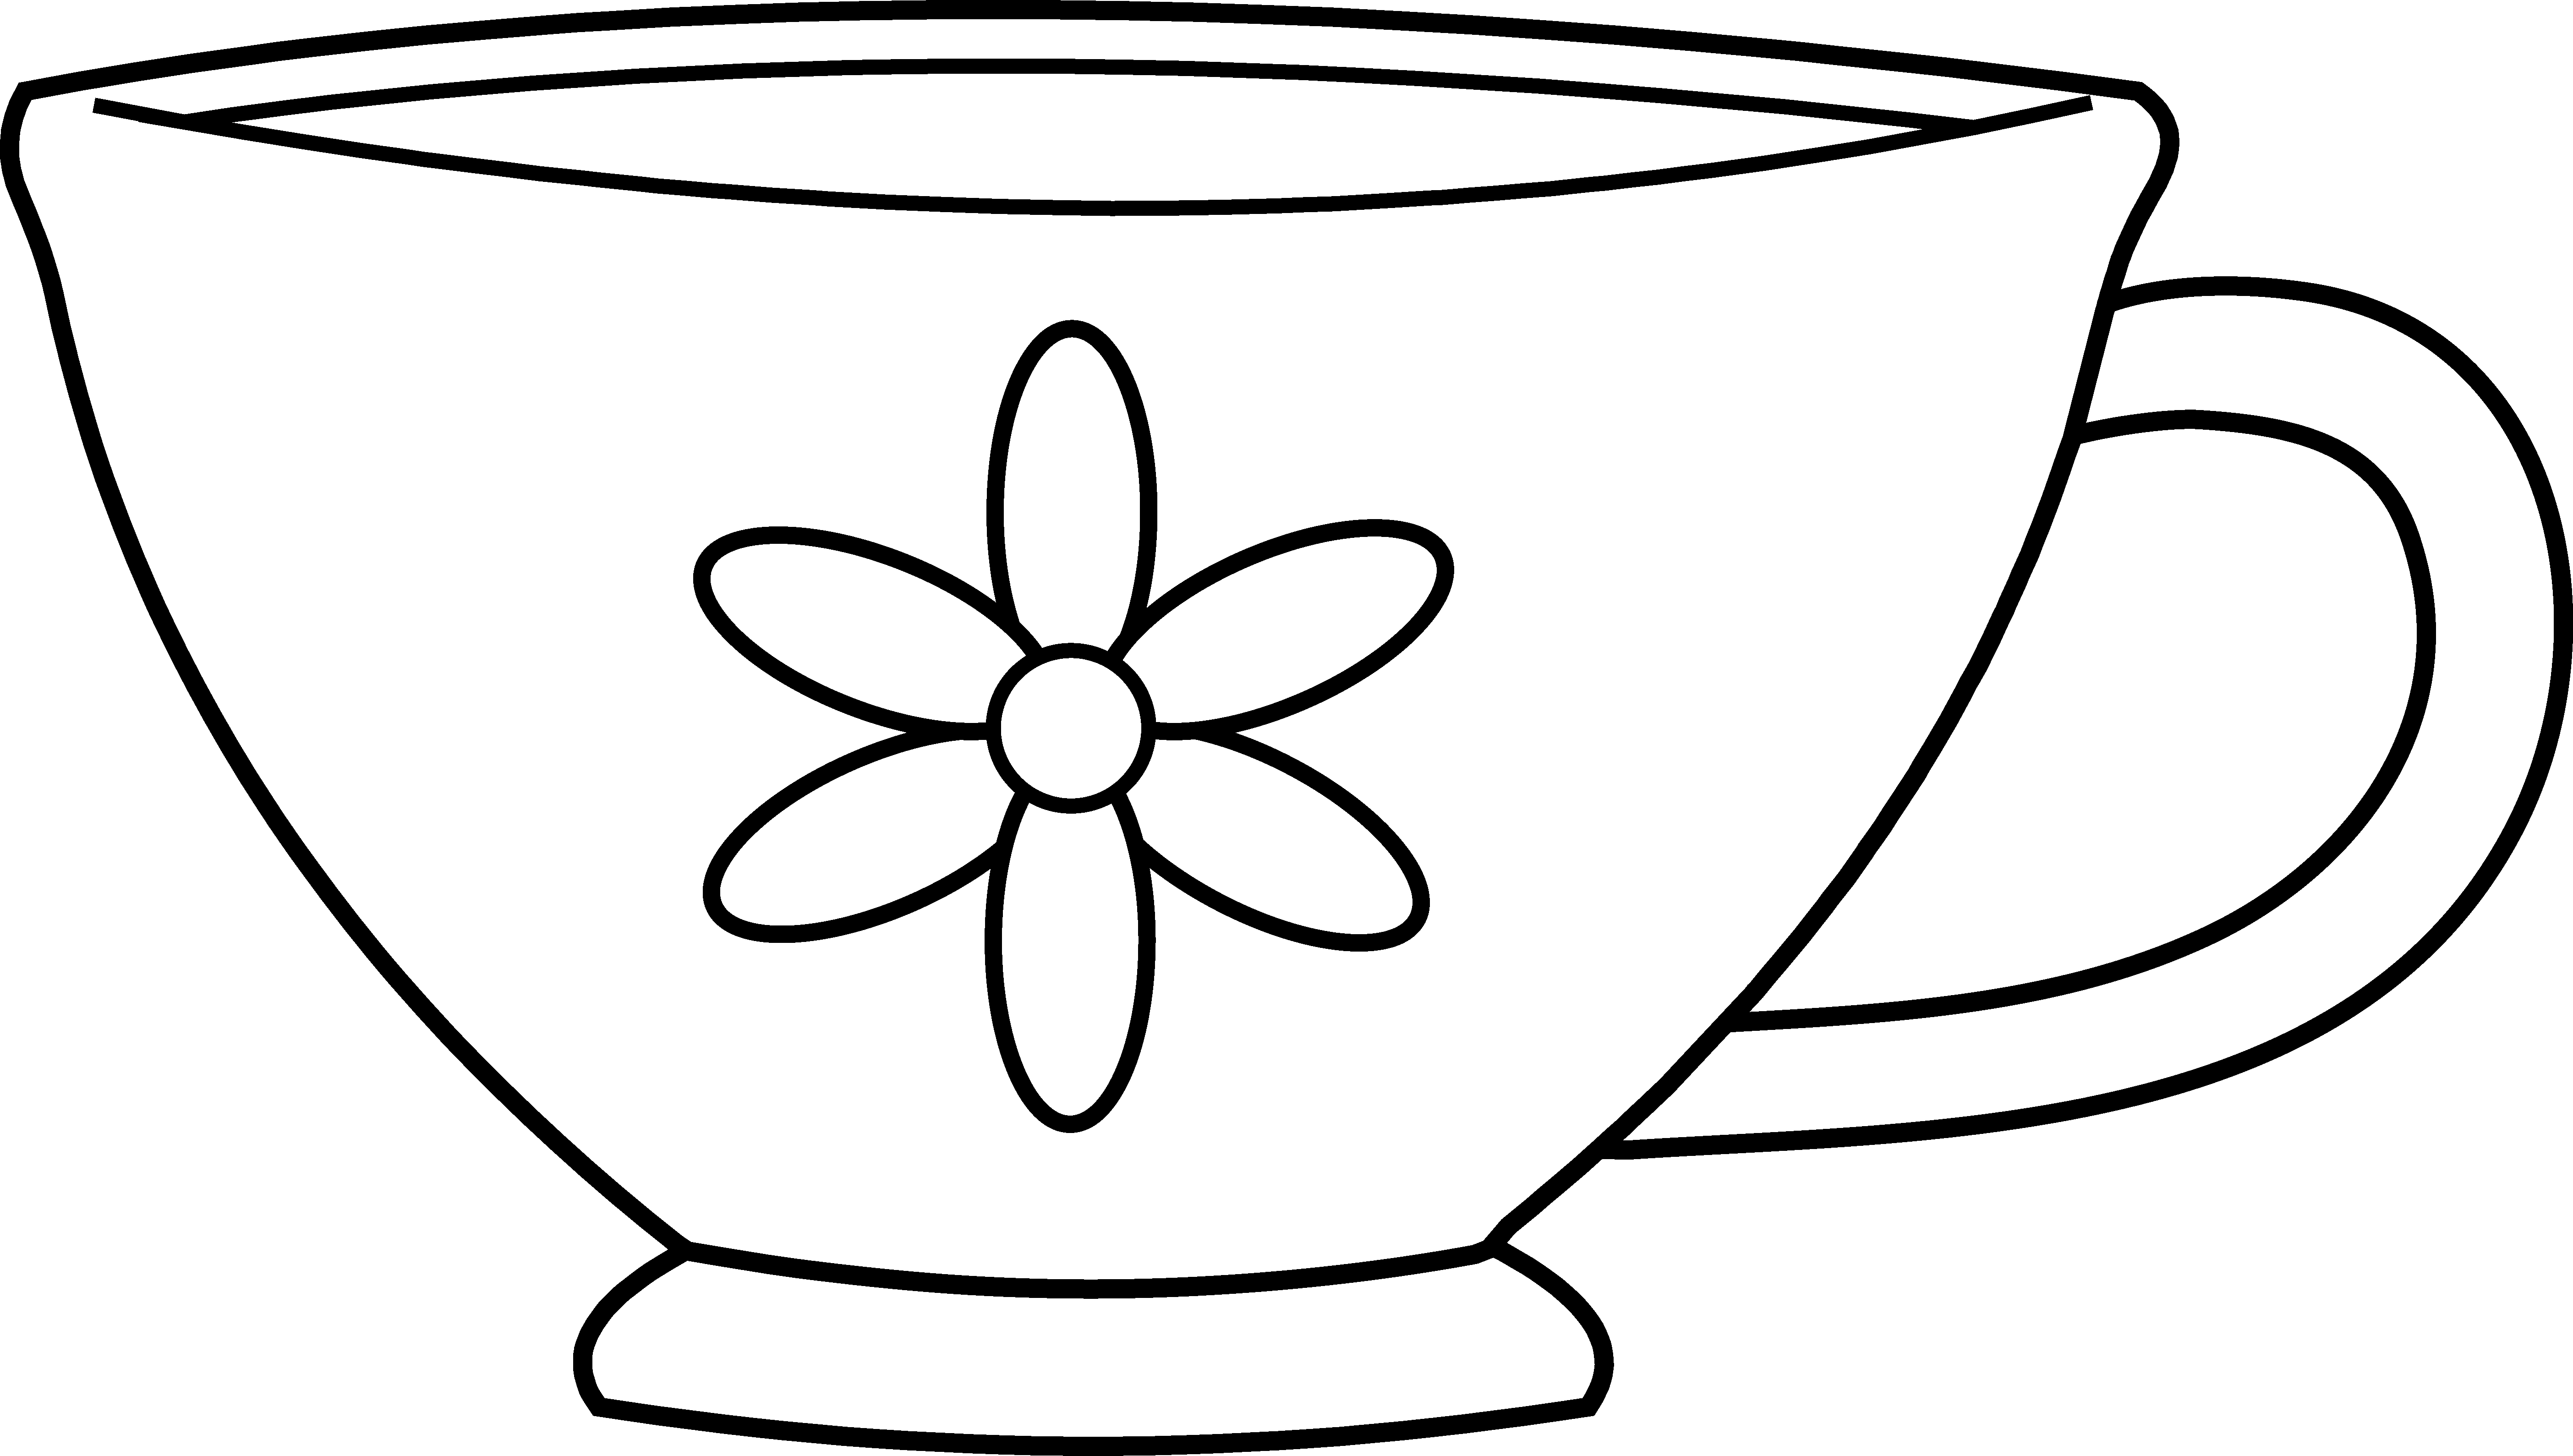 tea cup coloring page - cute teacup coloring page 1602